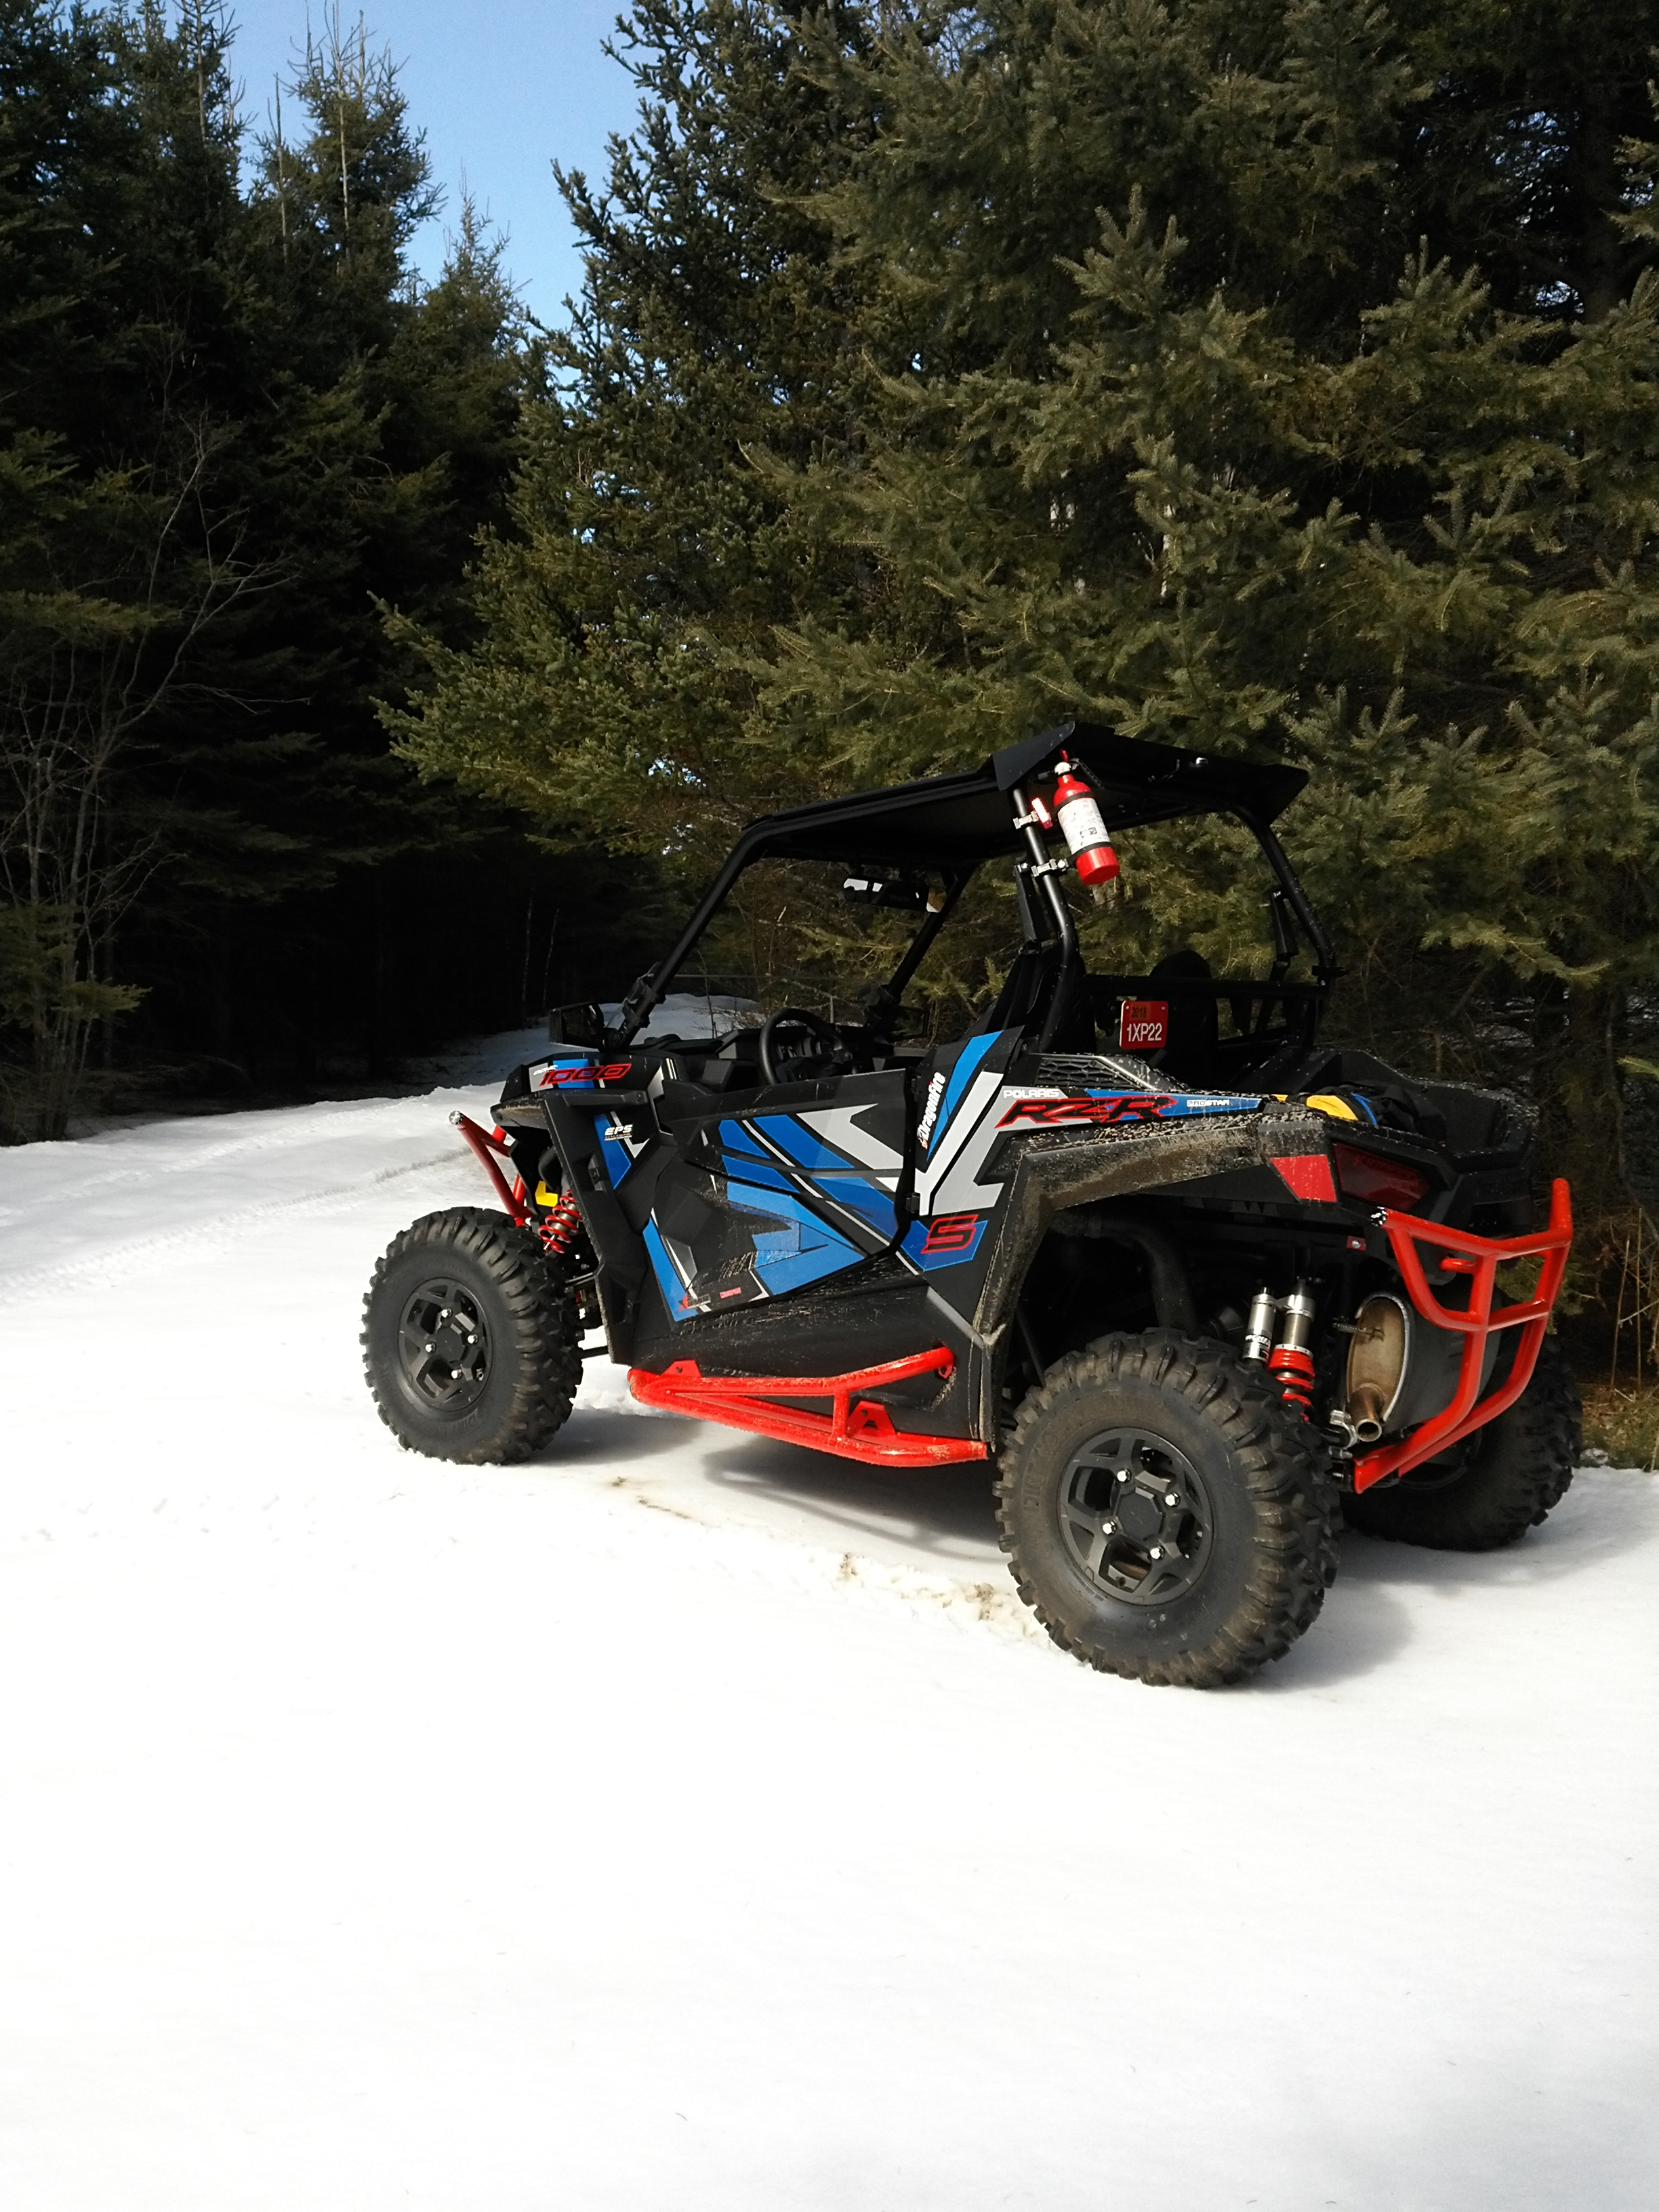 Click image for larger version  Name:Rzr at shack parking lot..jpg Views:260 Size:1.64 MB ID:406833